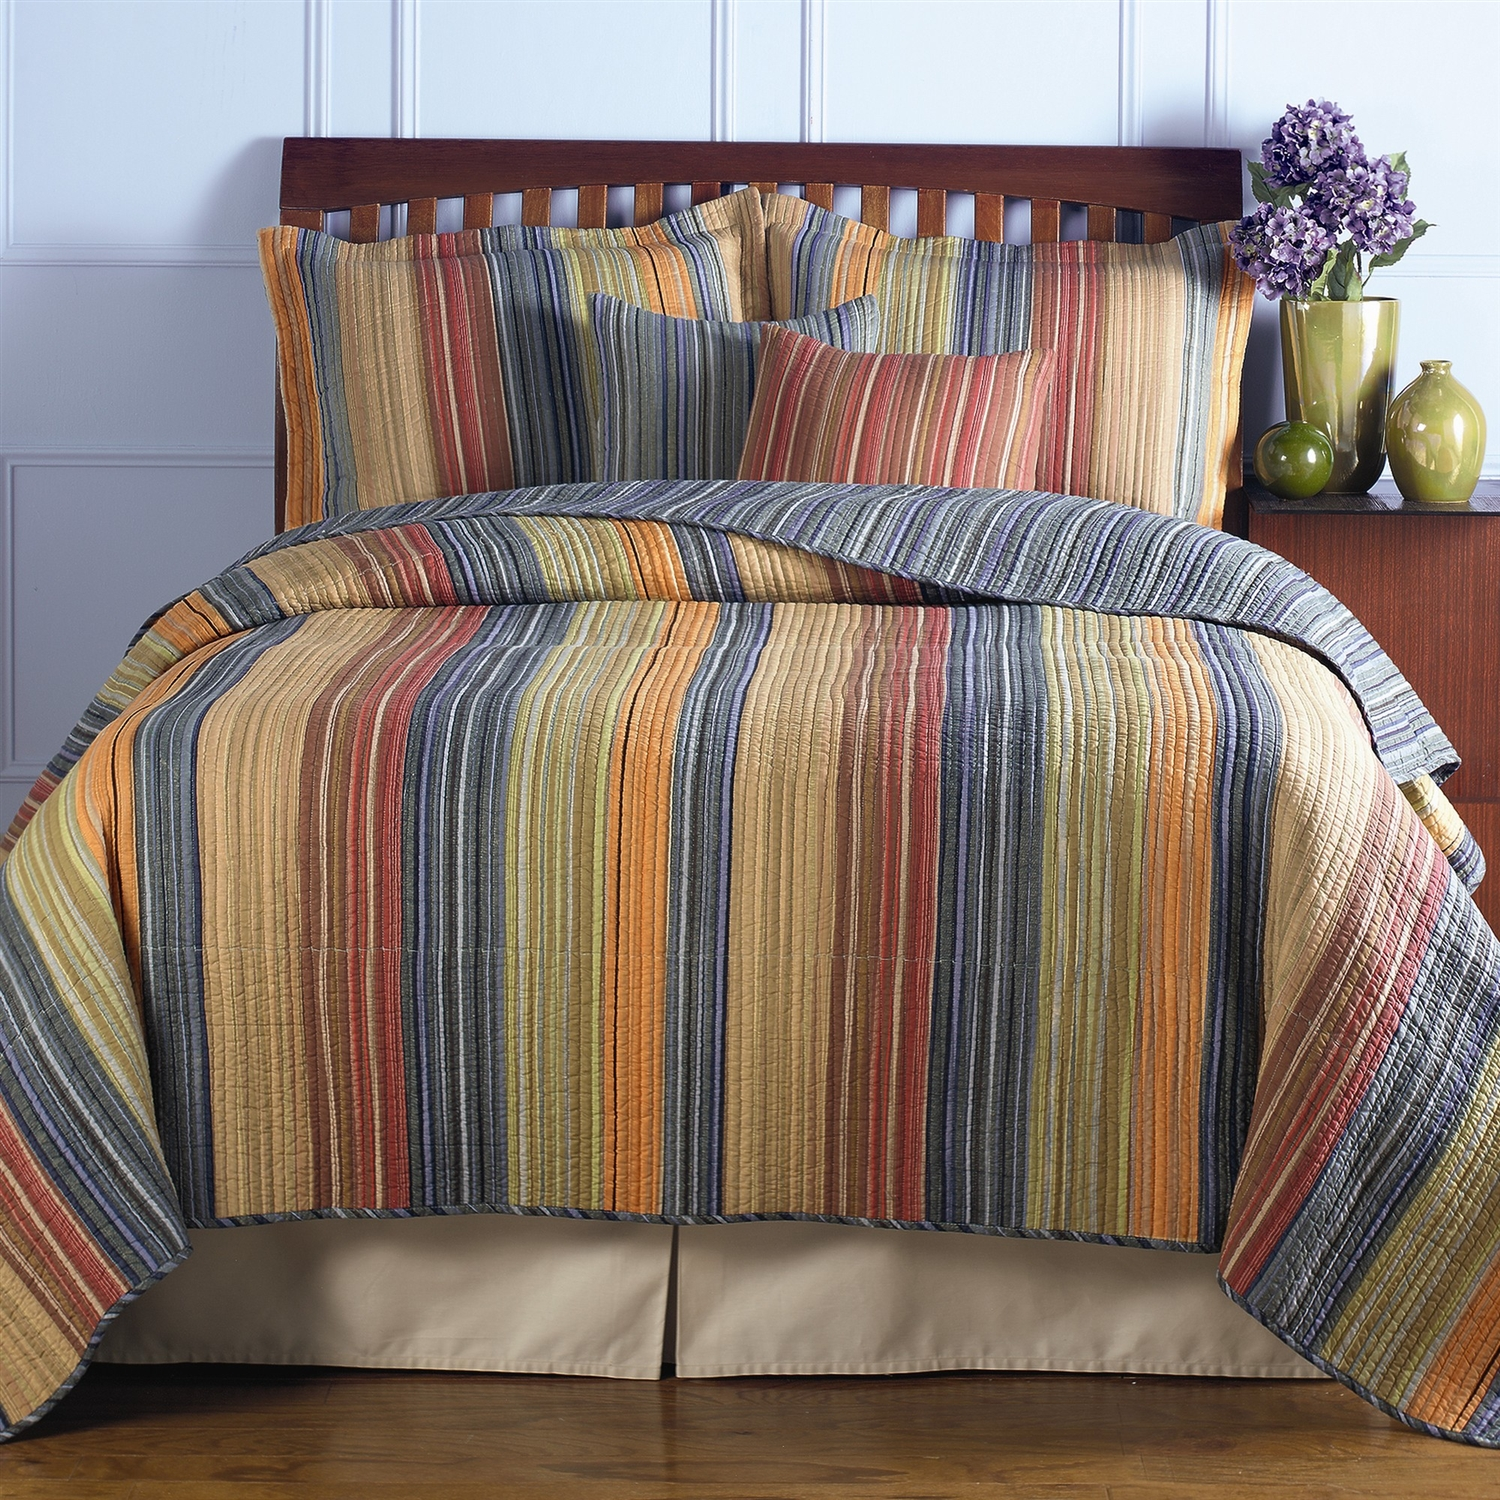 Full Queen 100 Cotton Quilt Set With Red Orange Blue Brown Stripes